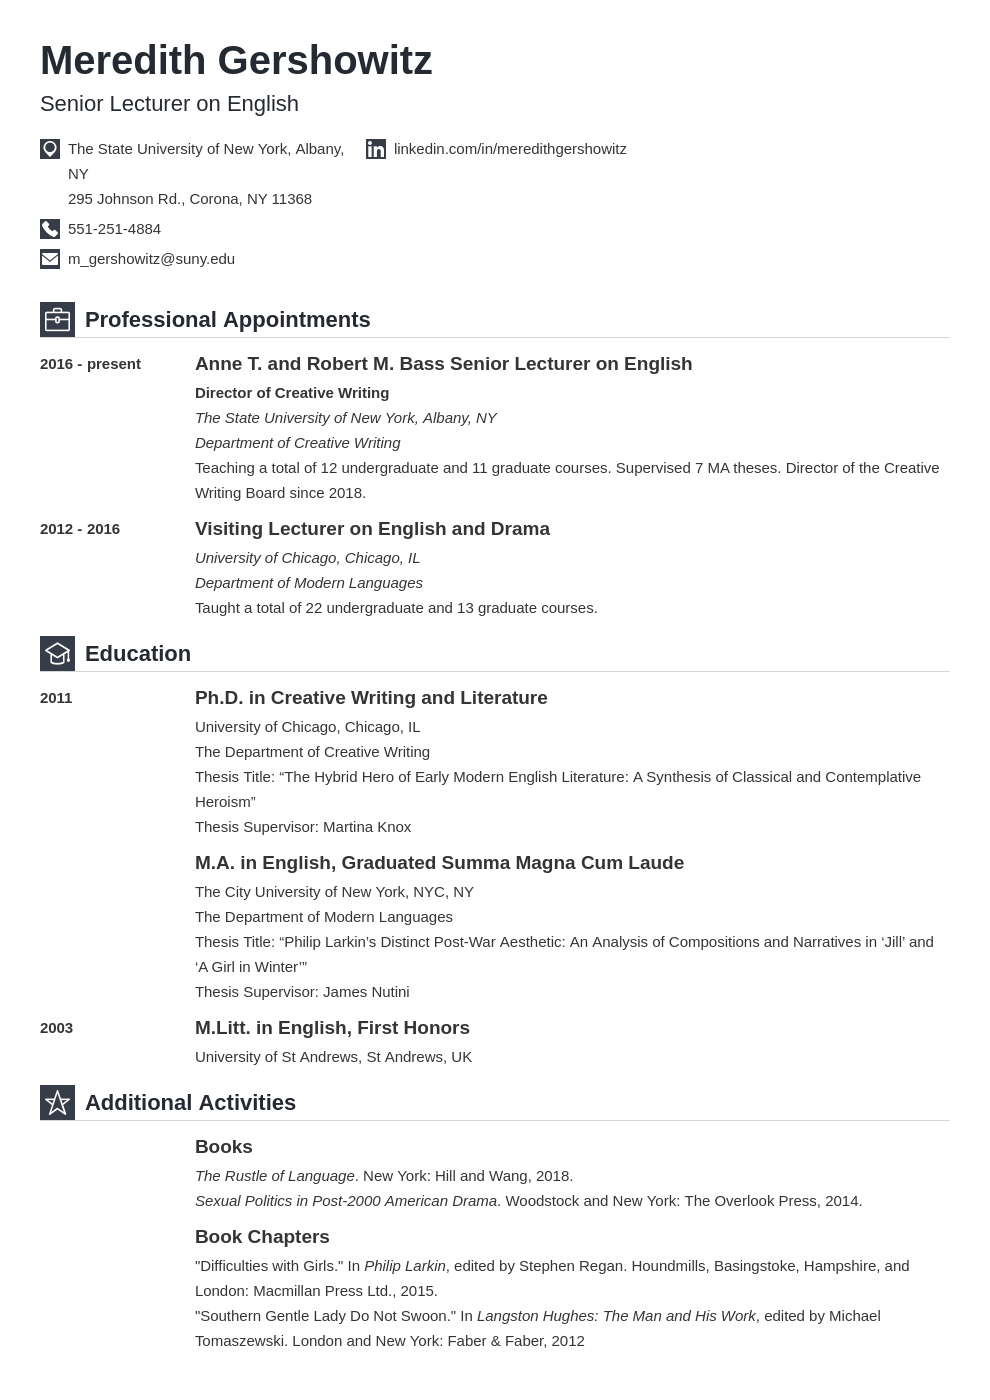 academic cv example template iconic in 2020 Academic cv